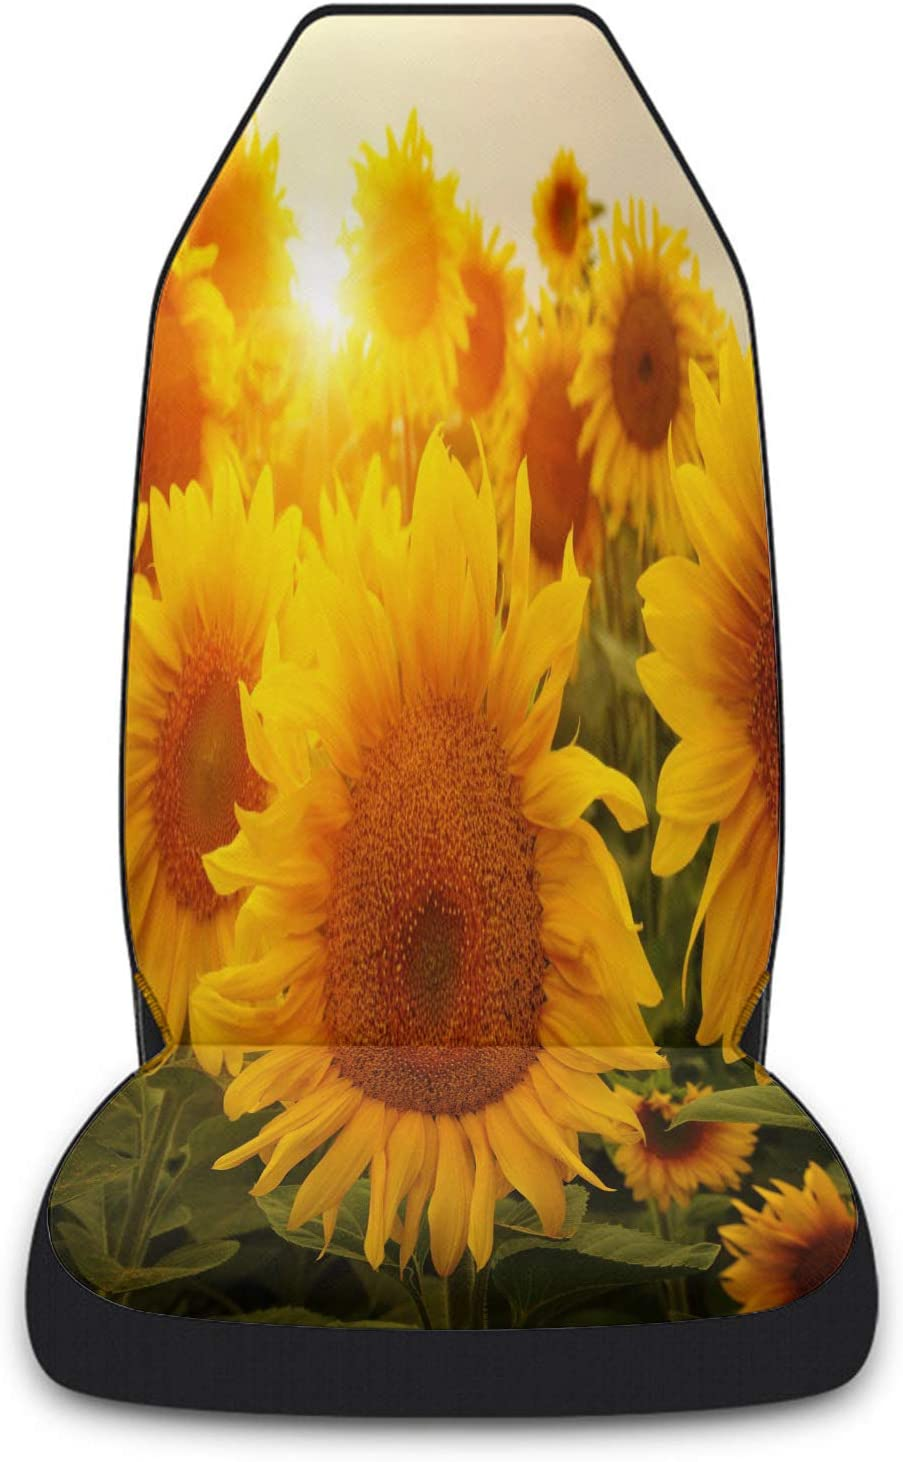 Cloud Dream Home Car Virginia Beach Mall Seat Field Max 78% OFF Covers Blooming Front Sunflower